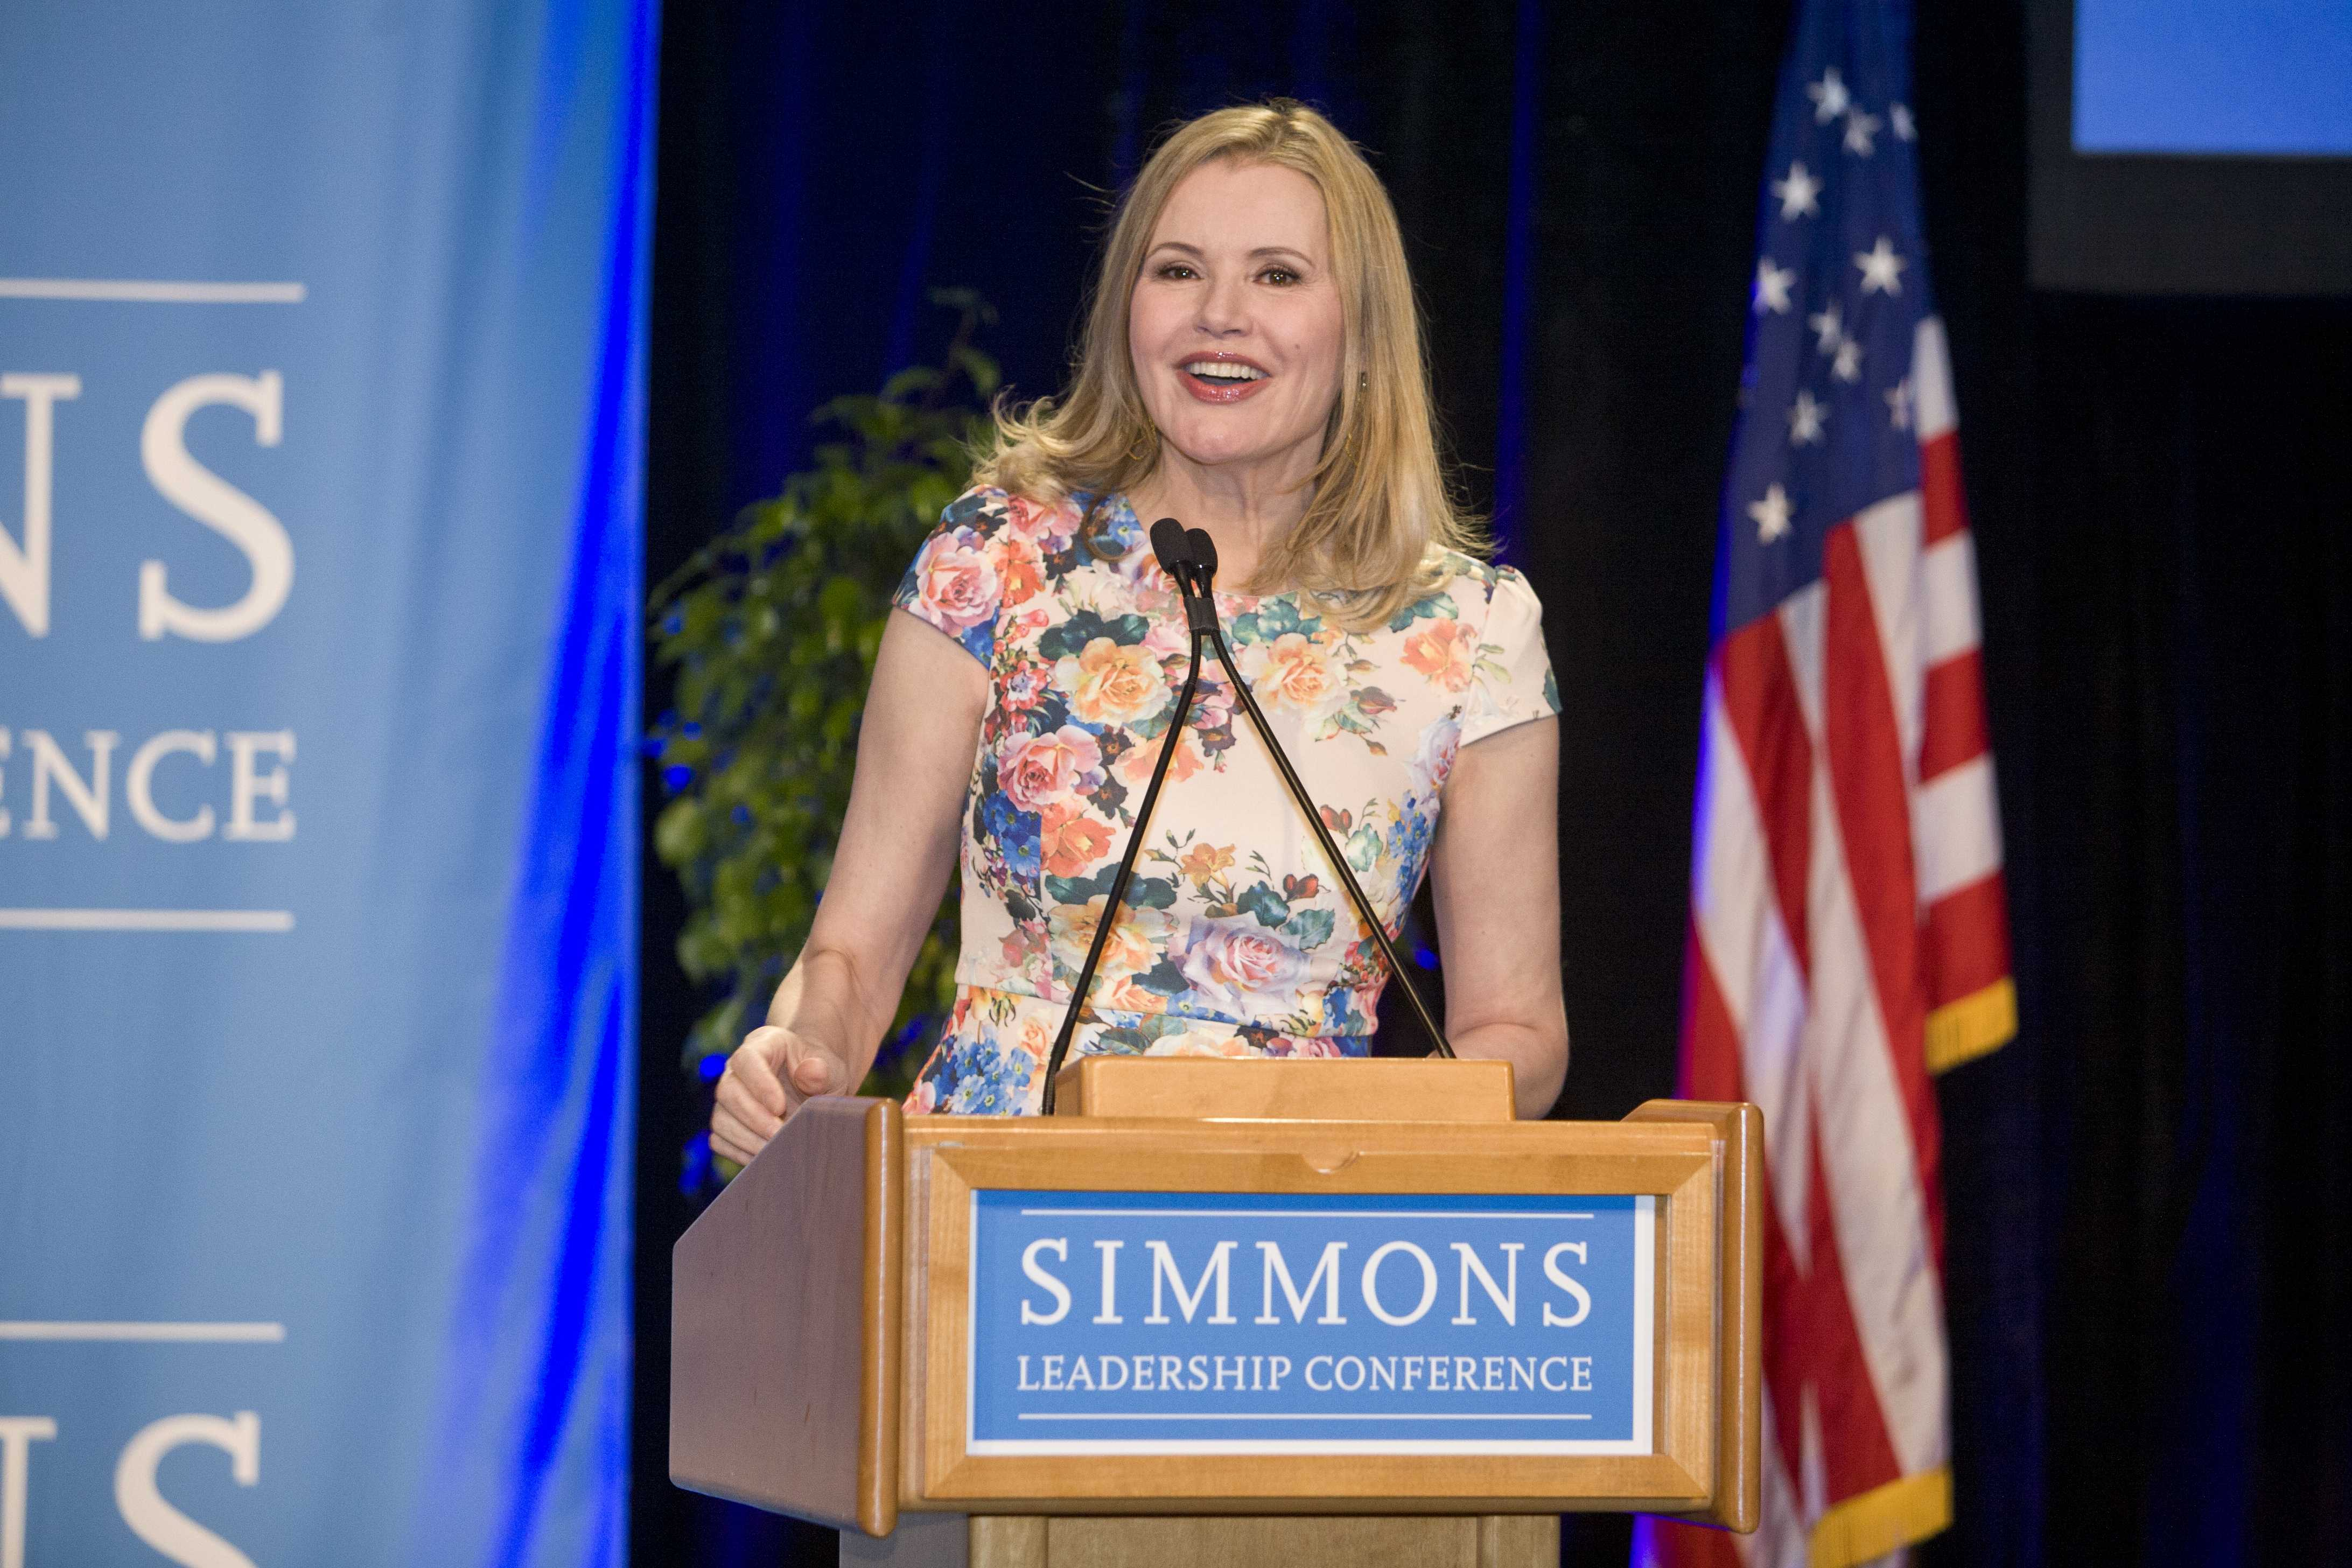 Geena Davis speaks at the conference